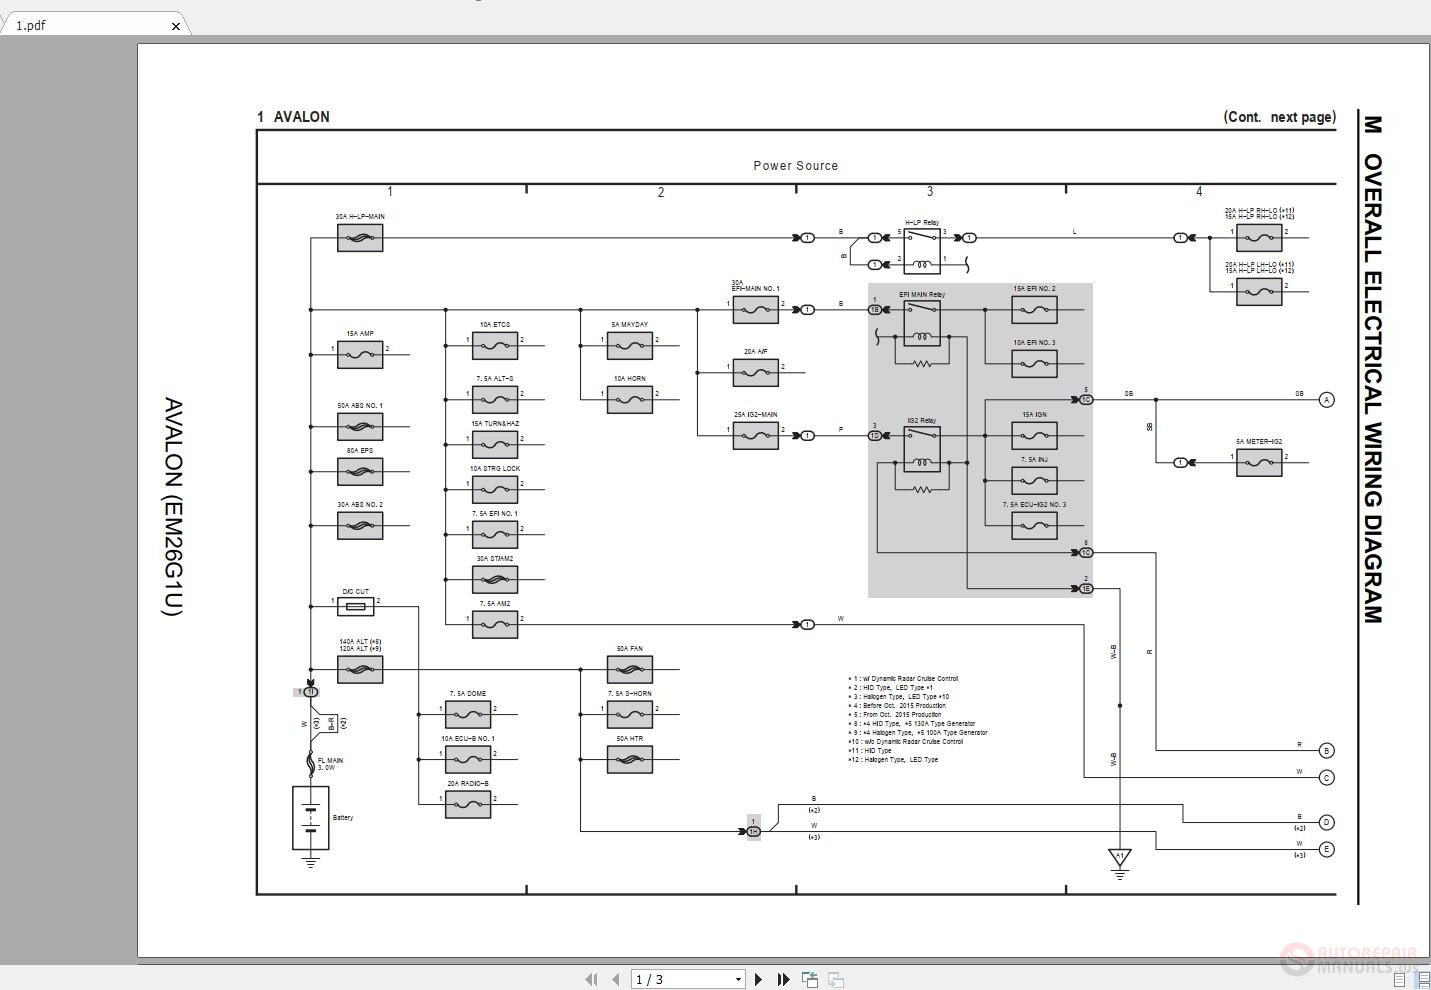 toyota avalon 2015-2018 electrical wiring diagram | auto repair manual  forum - heavy equipment forums - download repair & workshop manual  auto repair manual forum